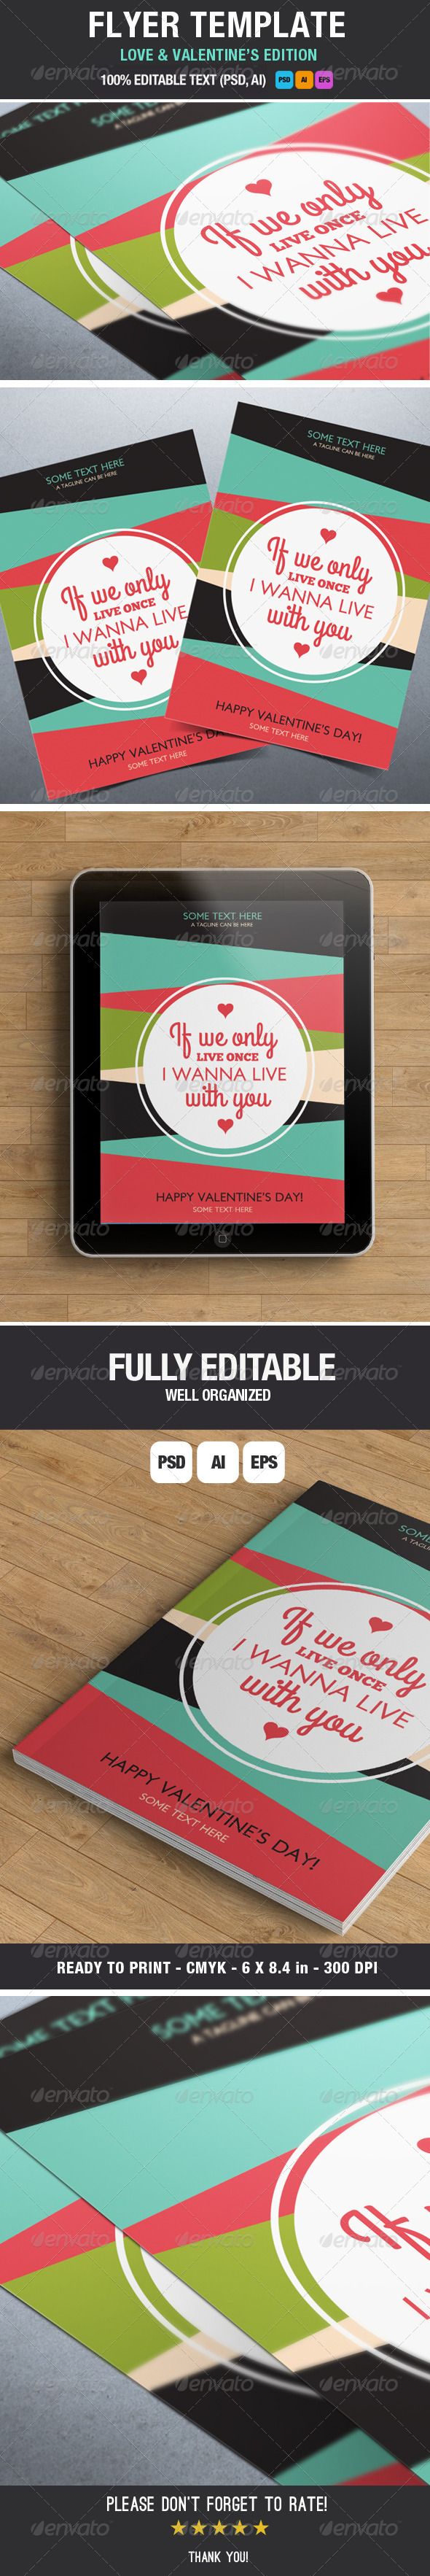 GraphicRiver Flyer Love Quote and Valentine Edition 6696240